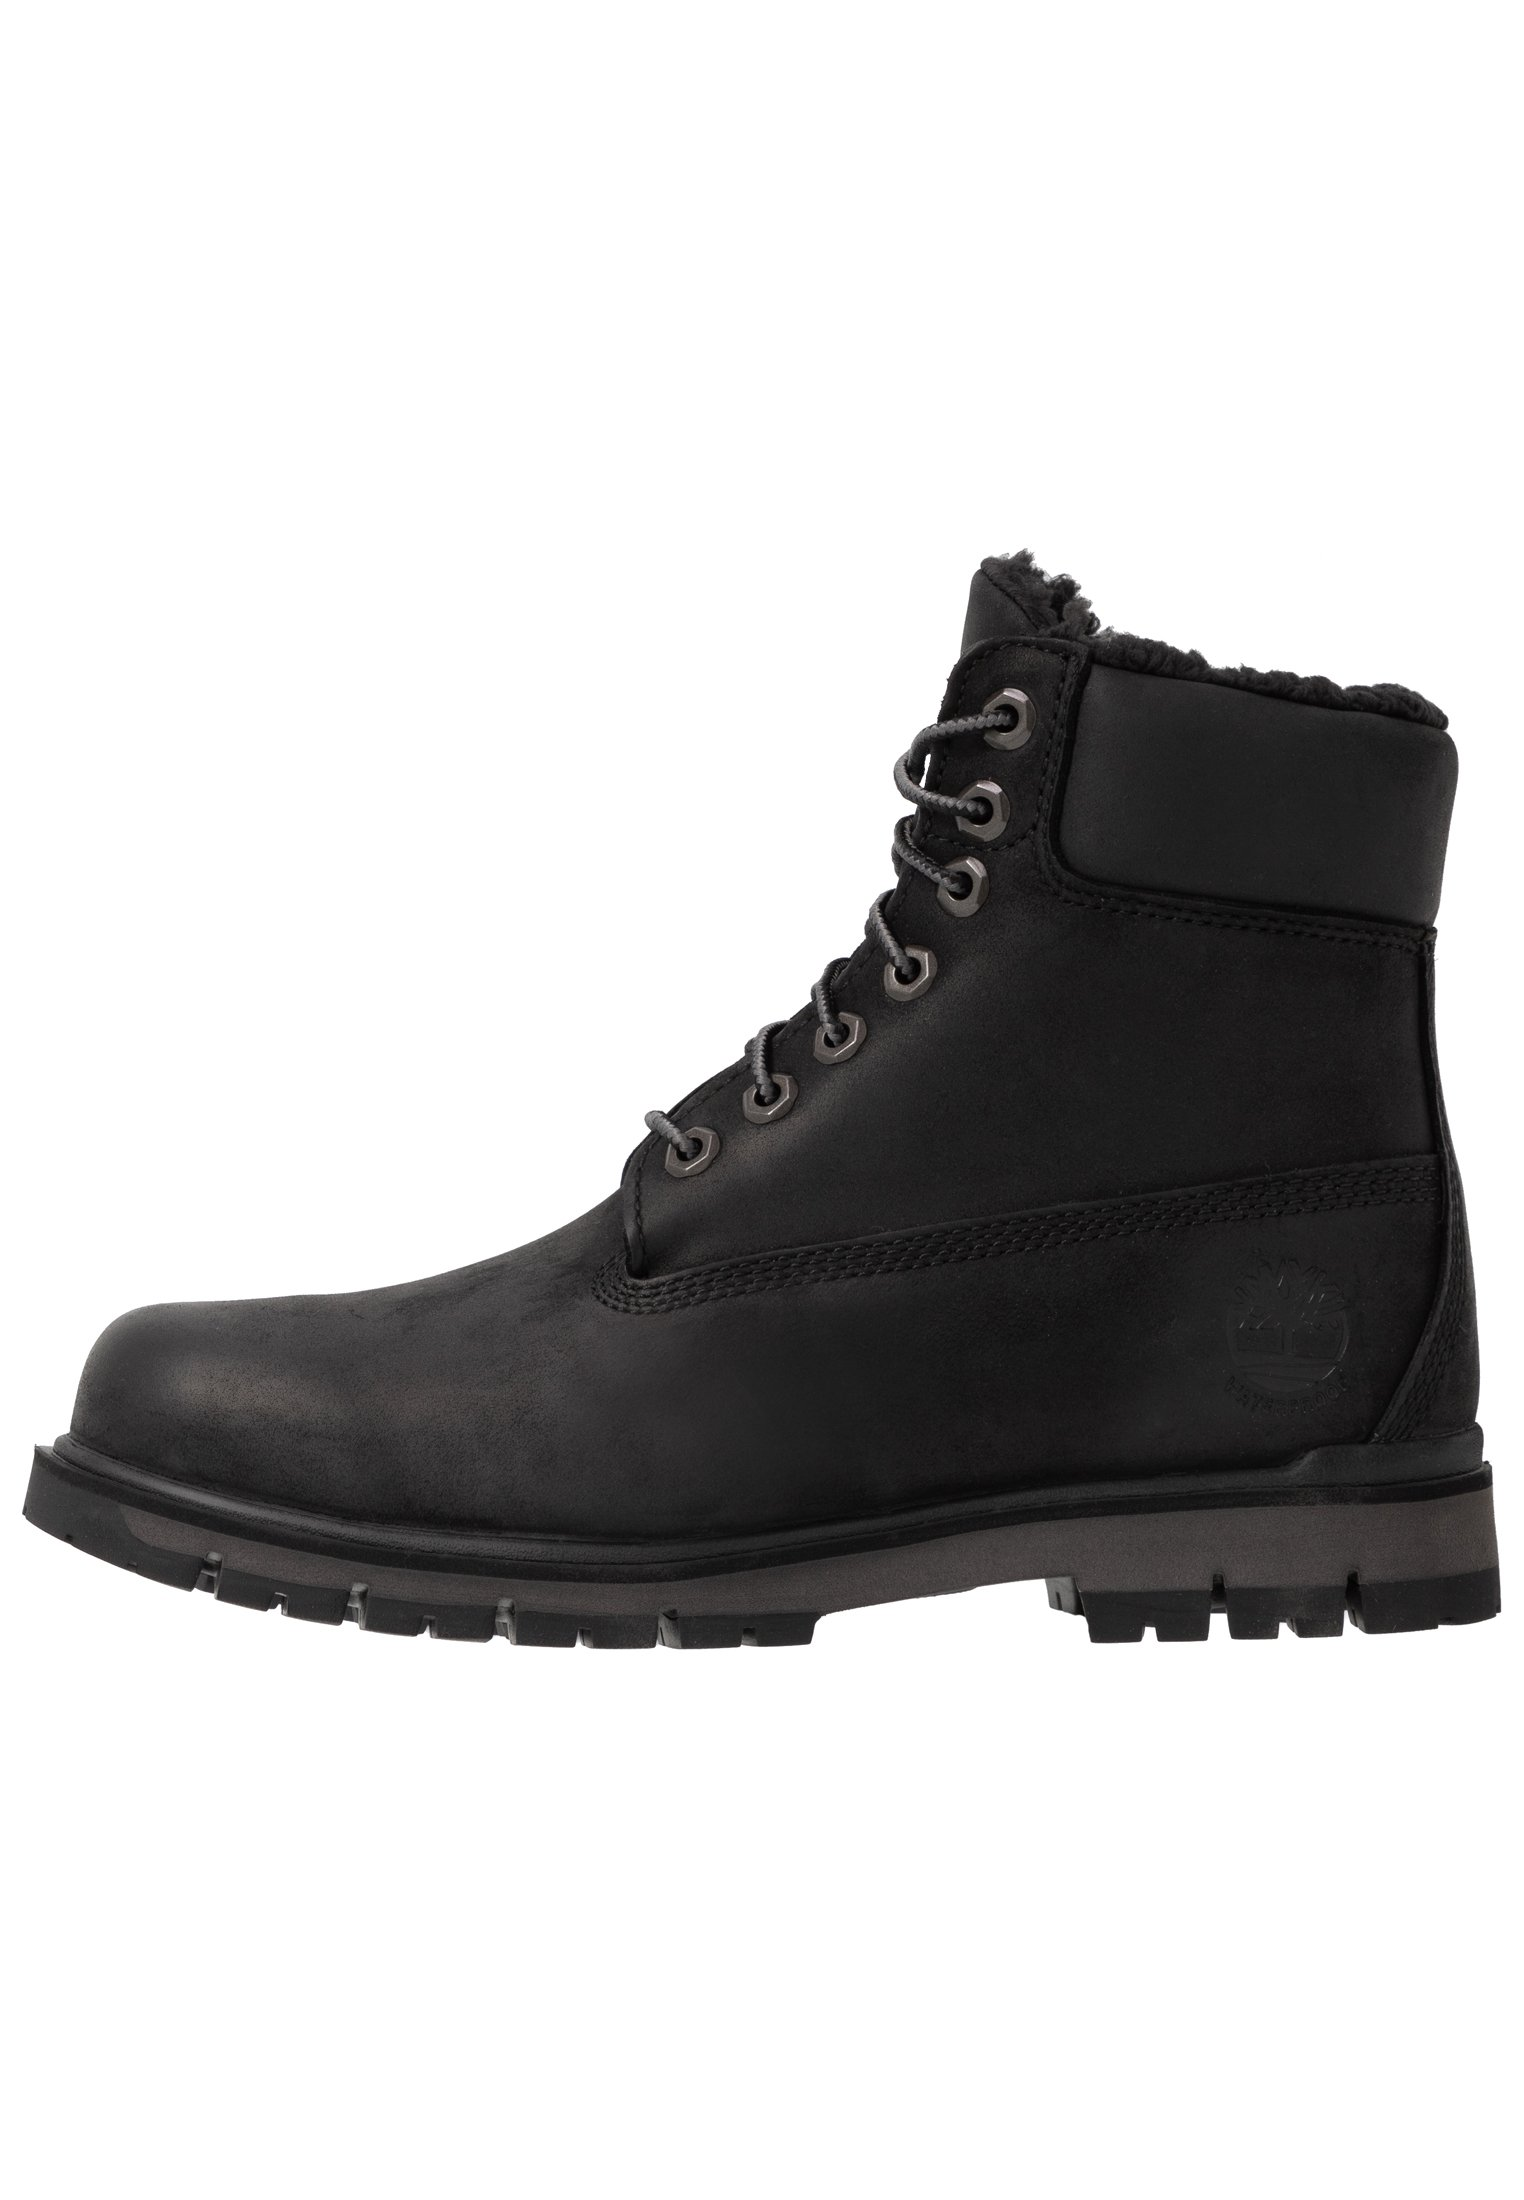 chaussure homme timberland neige